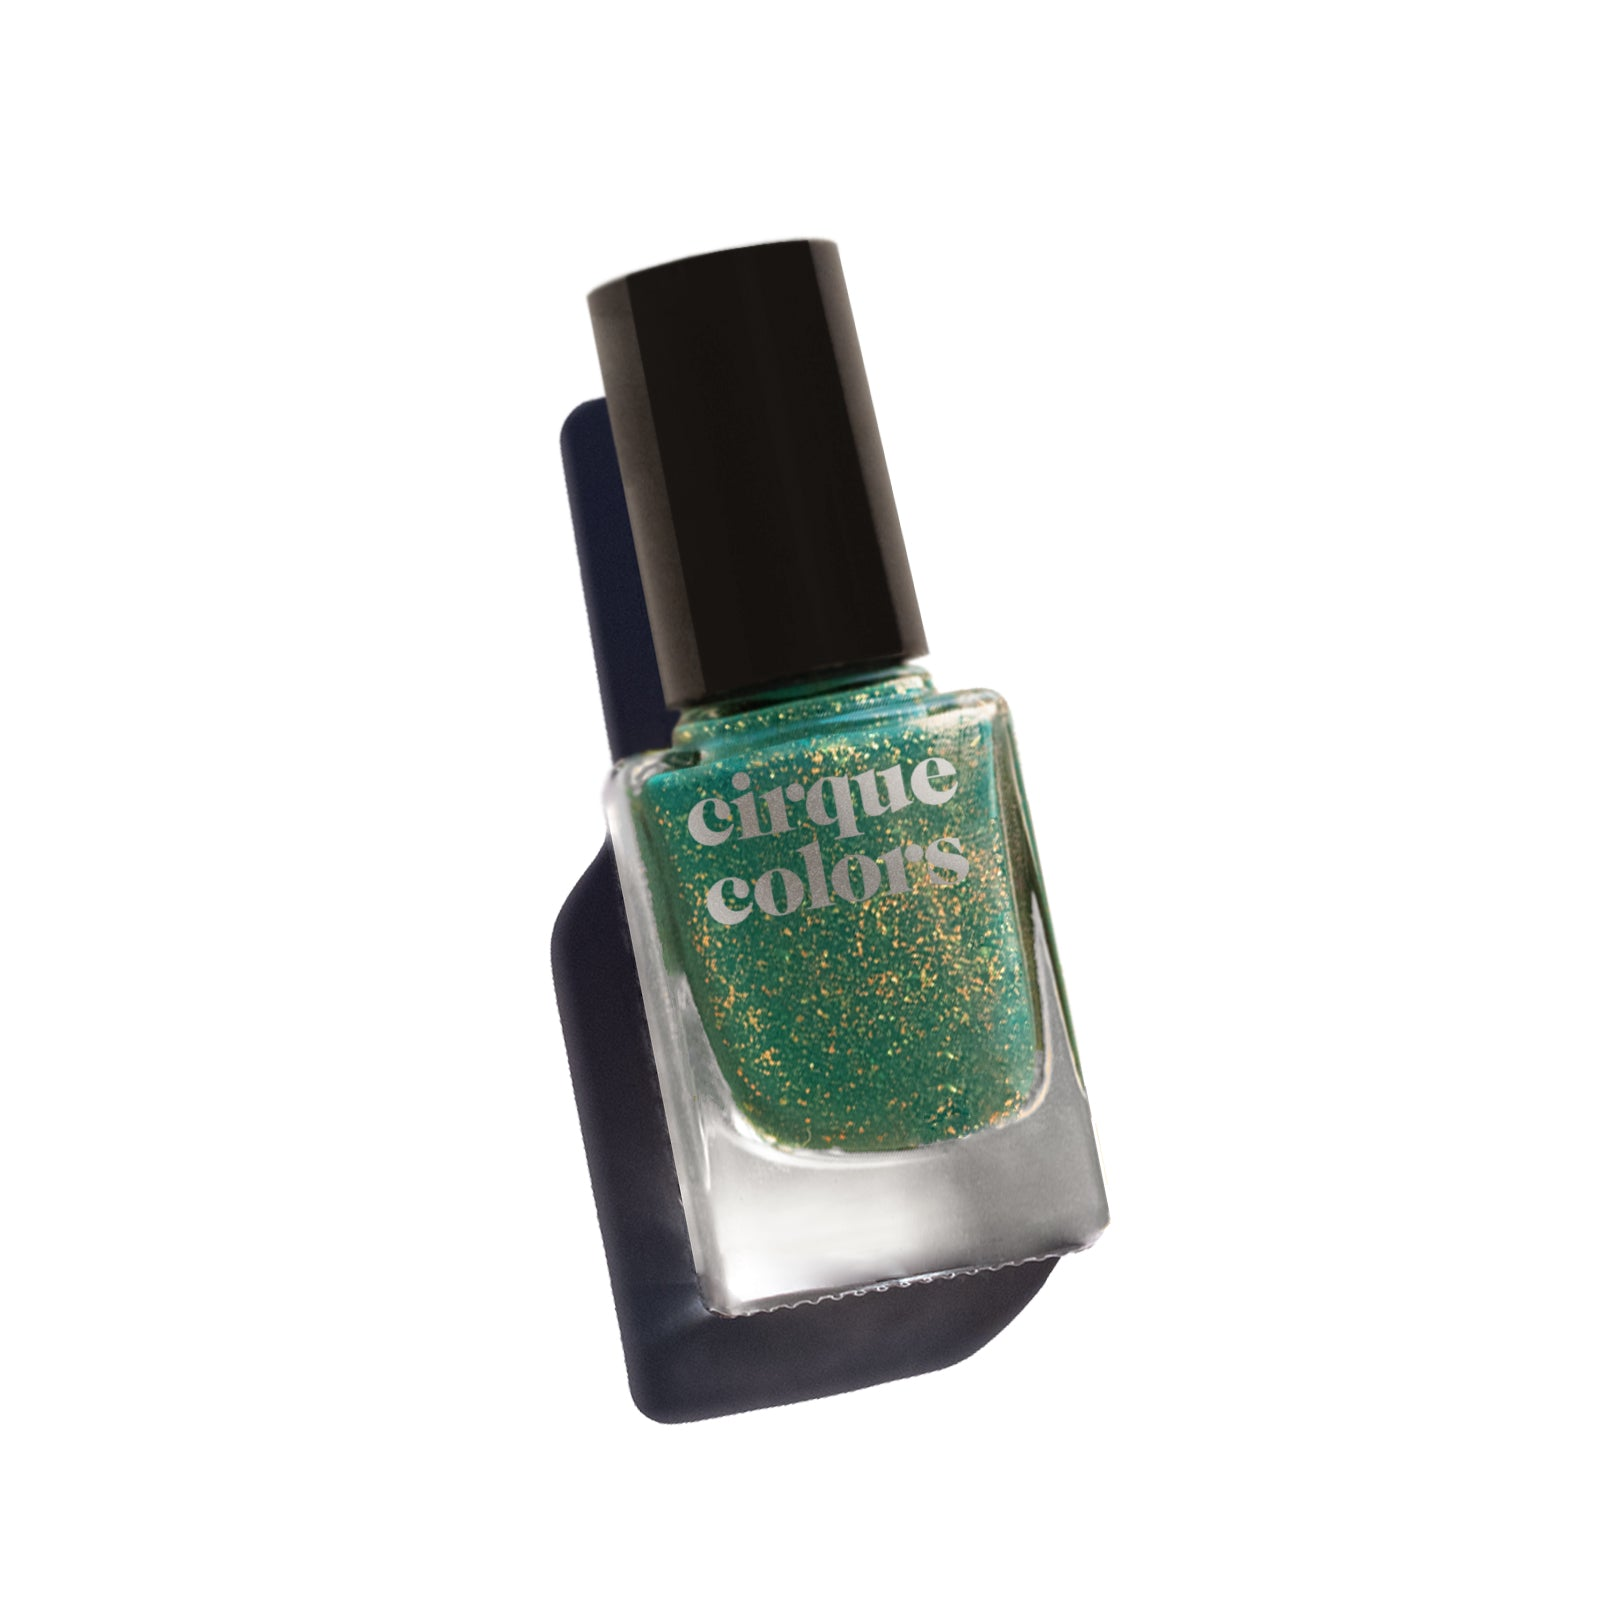 Cirque Colors - Aegean